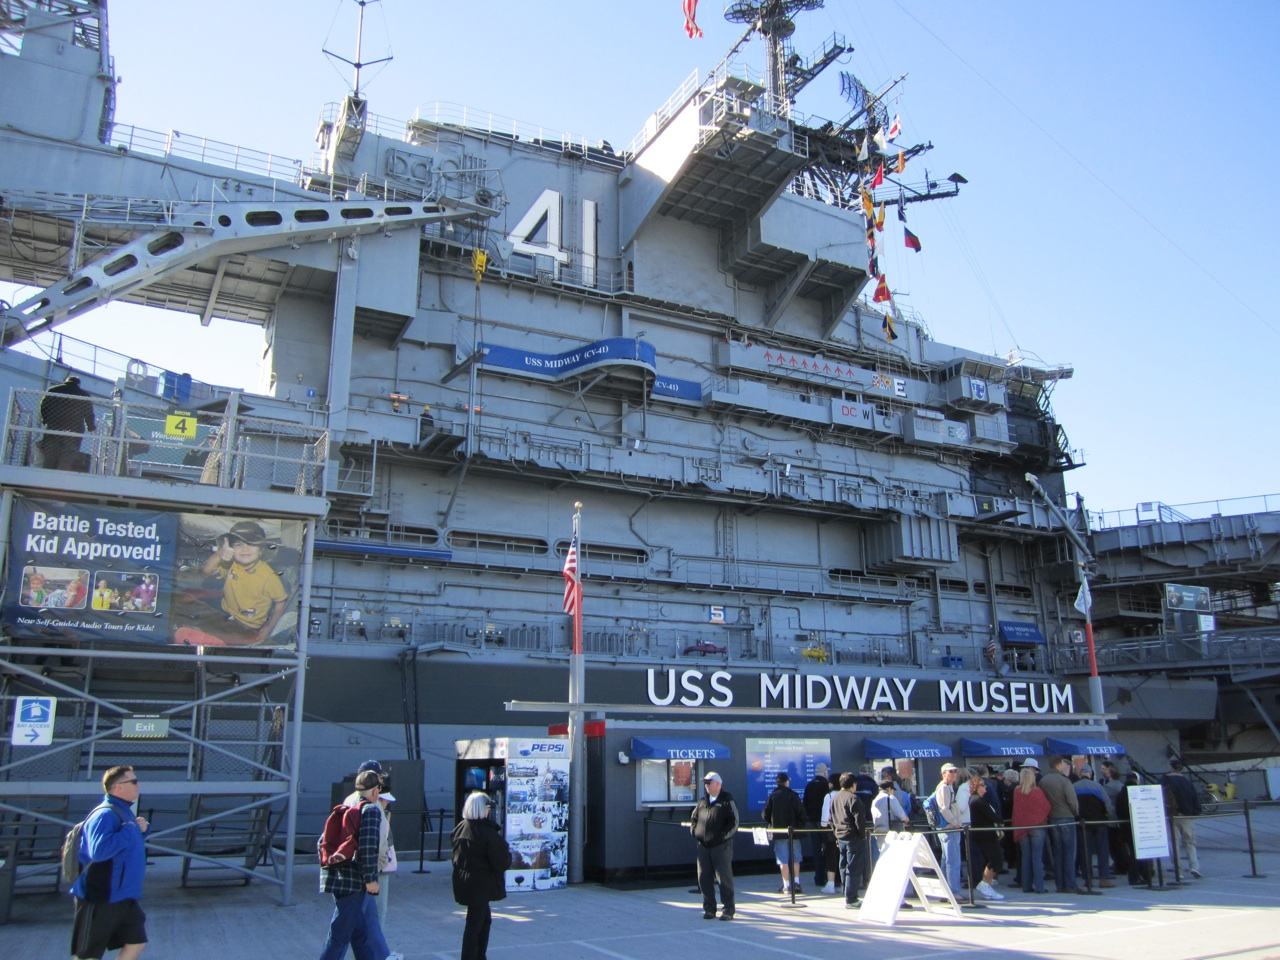 Cabrillo National Monument San Diego, USS Midway Museum. San Diego, California. | Inspire-se: Califórnia ...